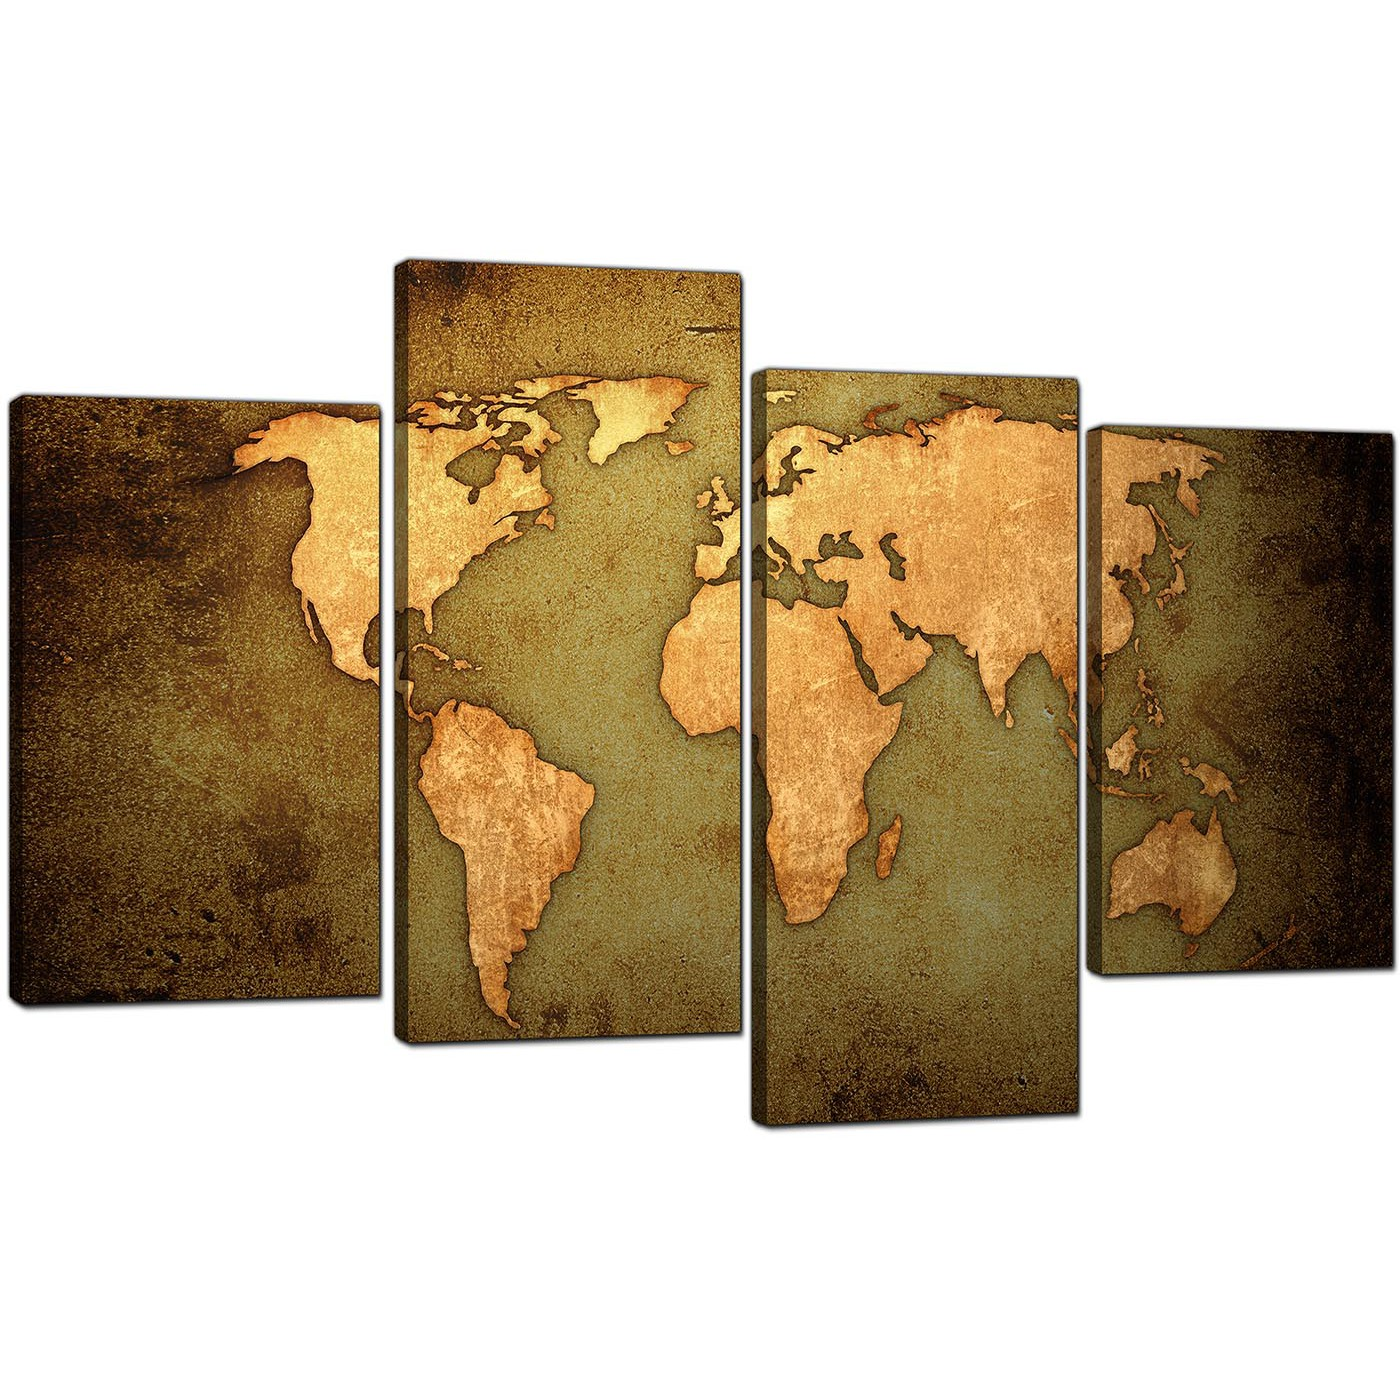 Canvas Prints Of A World Map In Green And Brown For Your Living Room - World map canvas